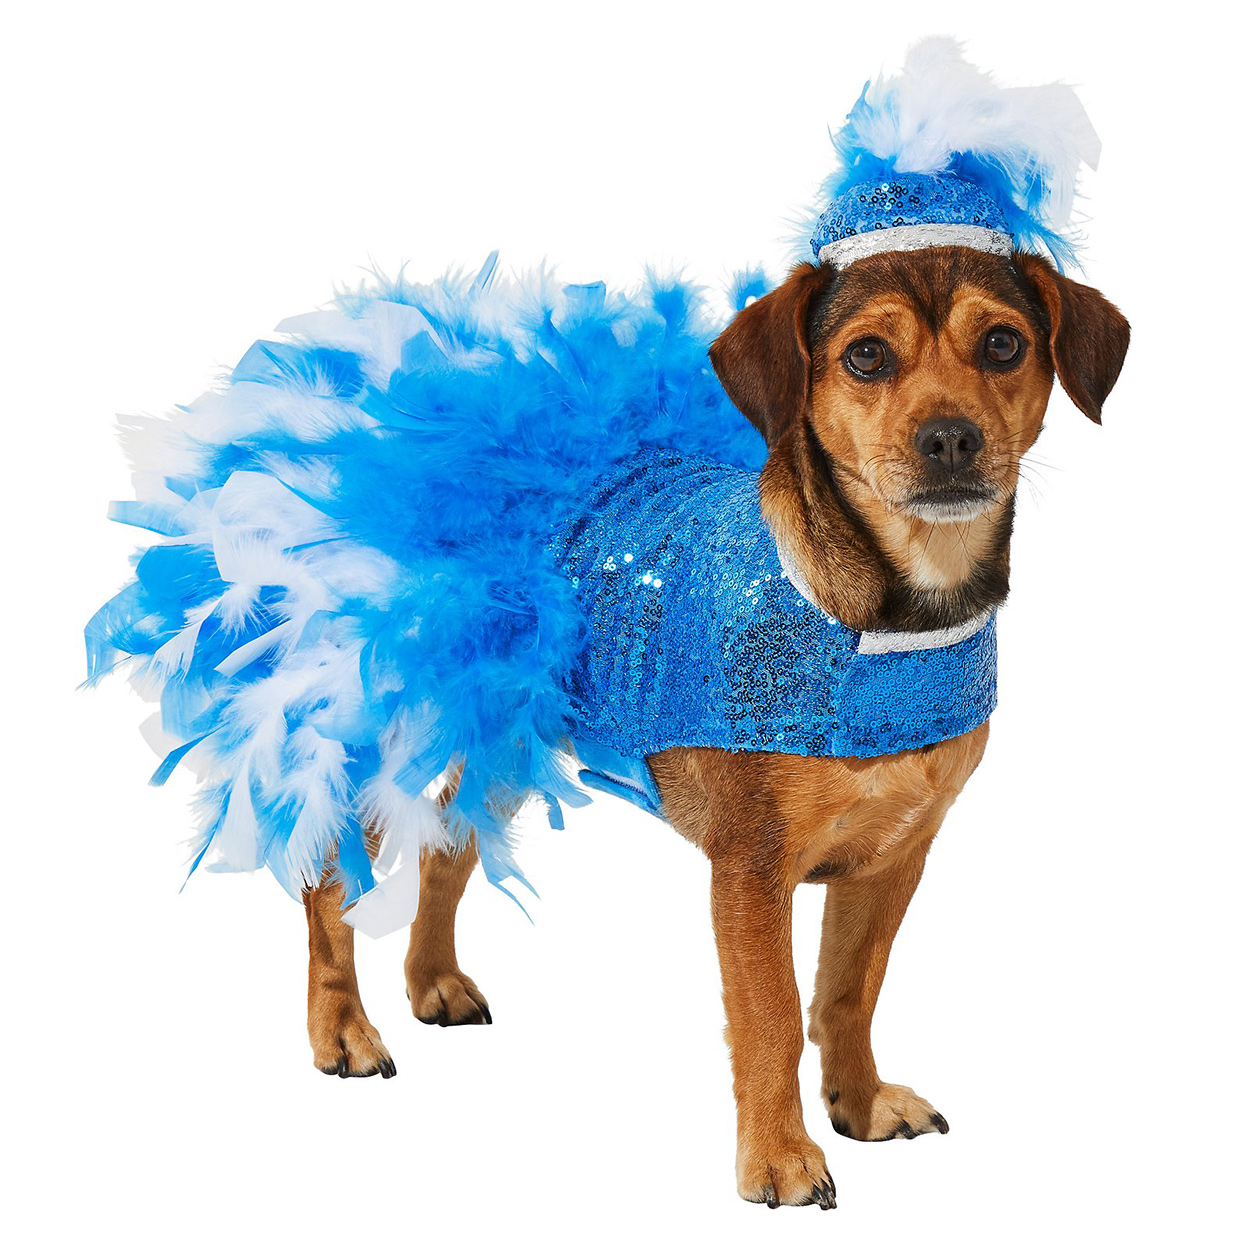 Dog wearing the Showgirl Dog & Cat Halloween Costume on a white background